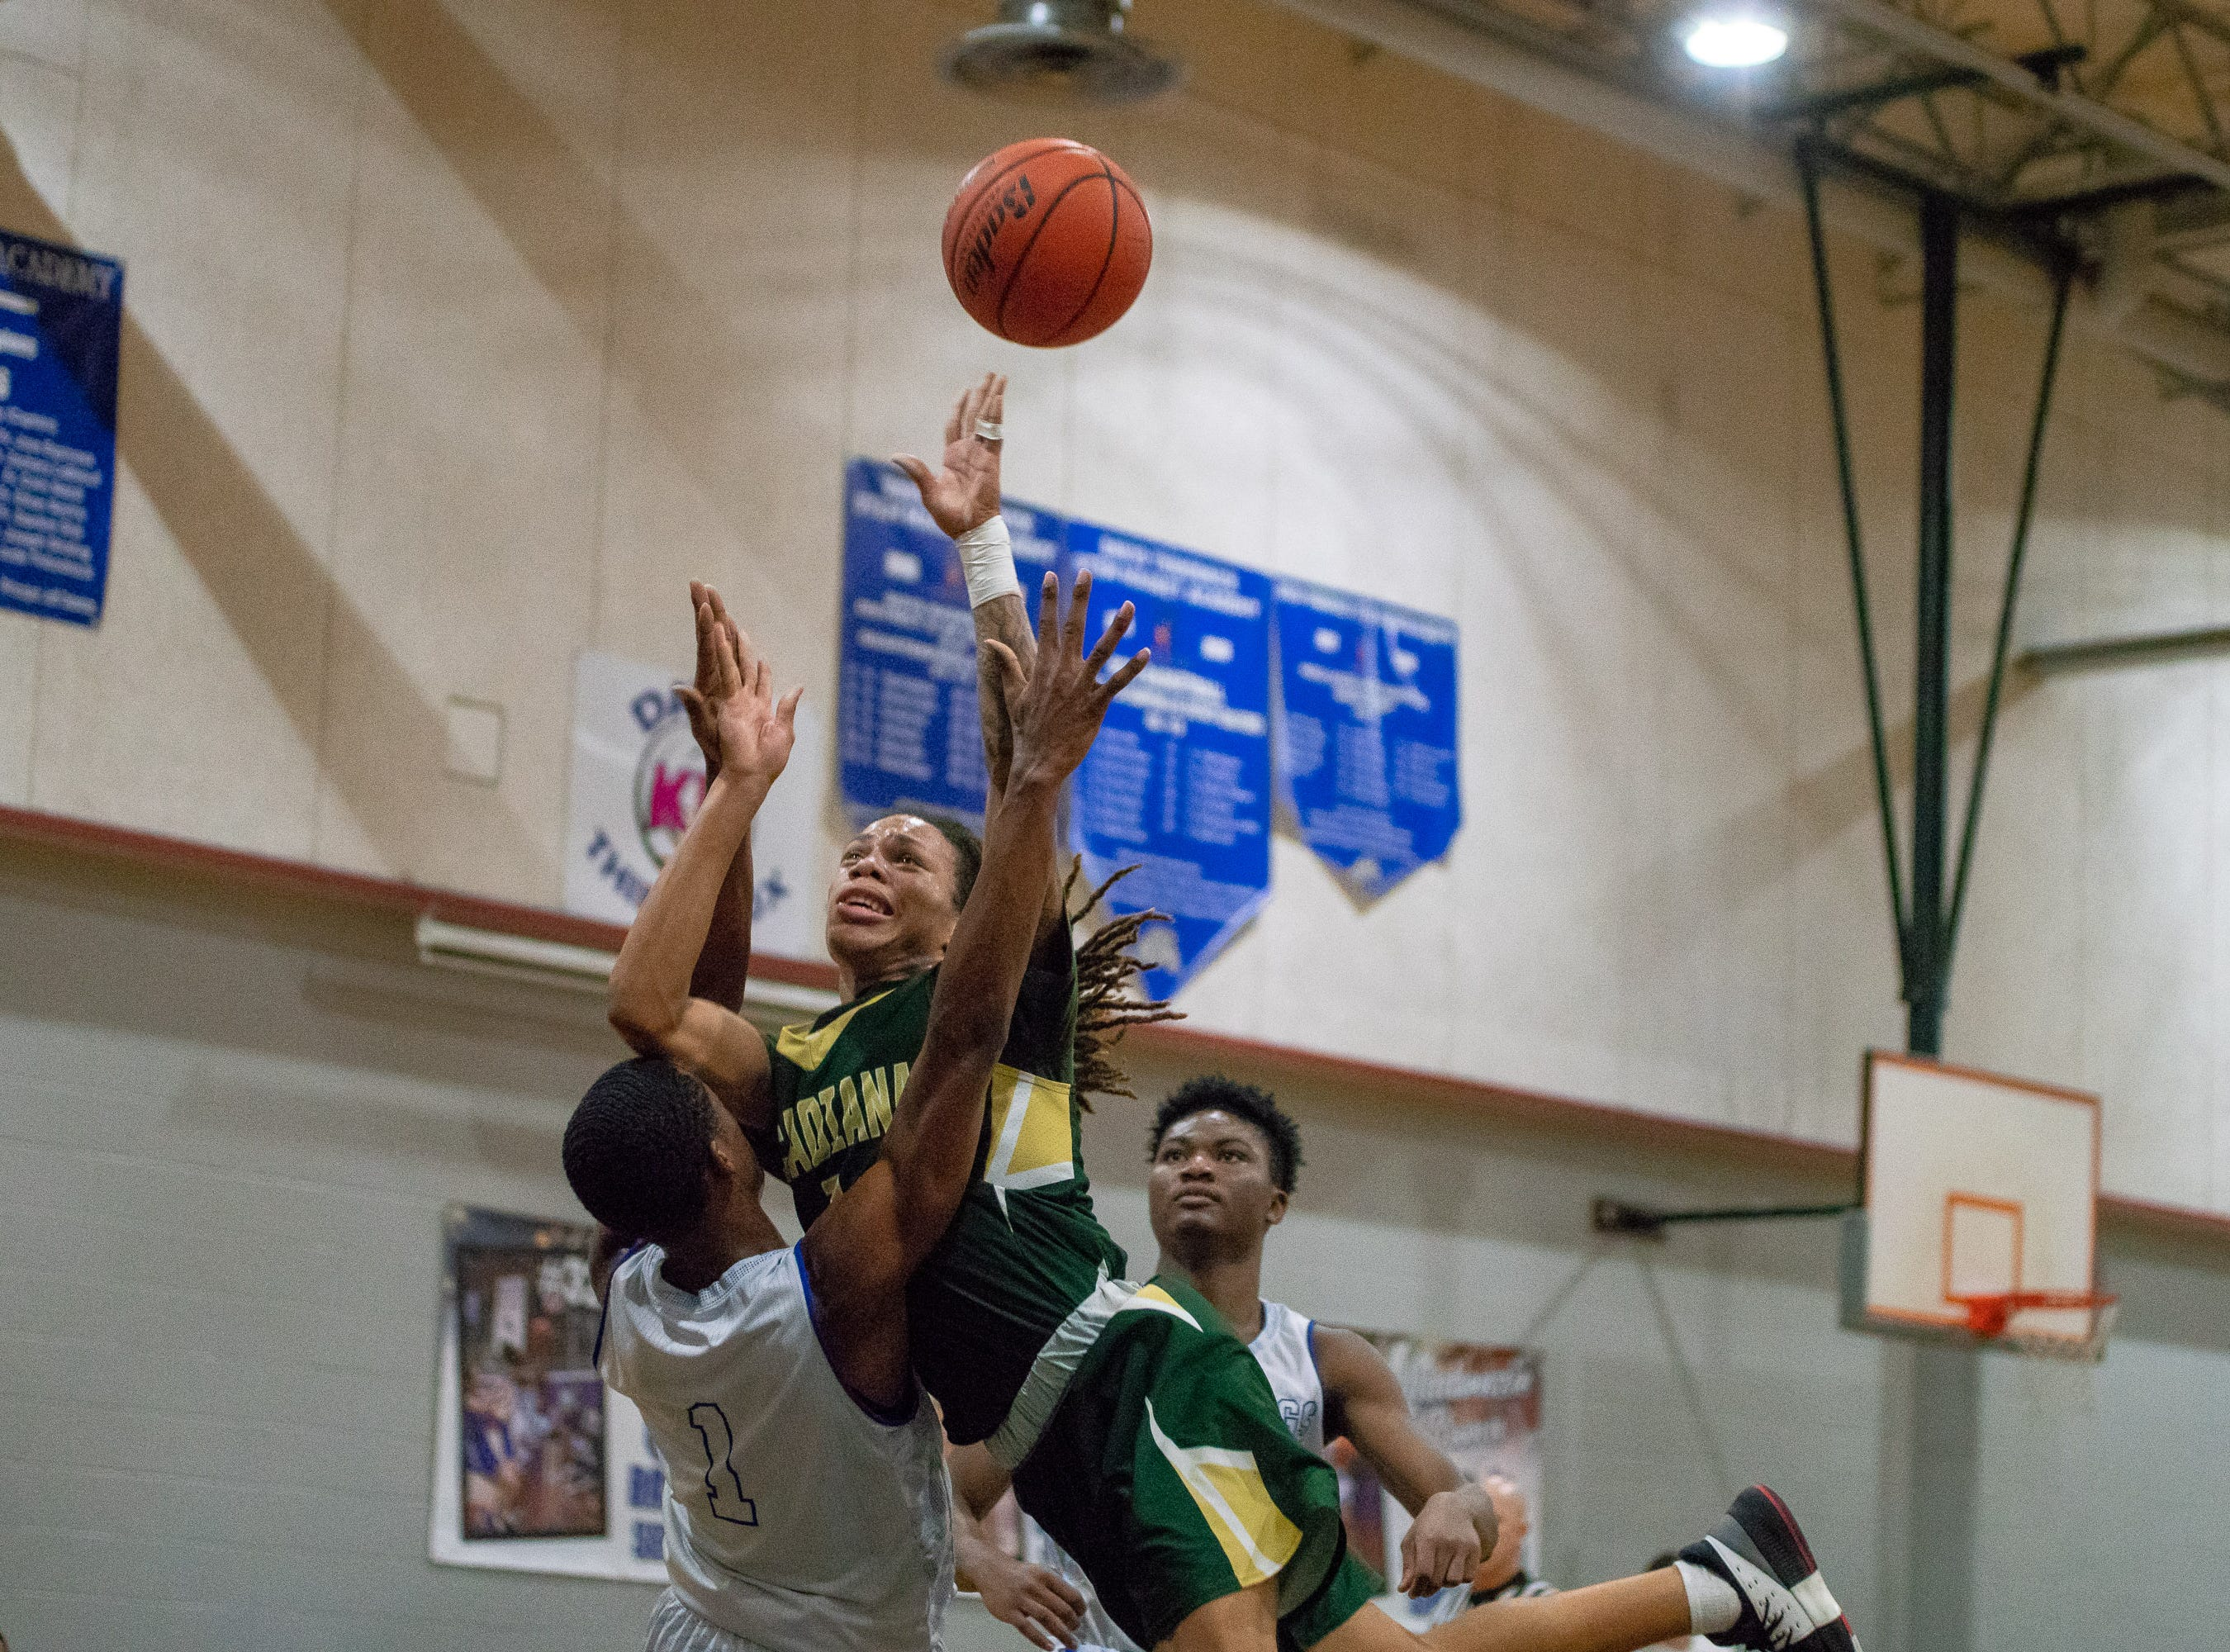 Acadiana's Dontreal Mouton drives to the basket to score  as the Acadiana high school Rams take on the David Thibodaux Bulldogs on January 8, 2019.